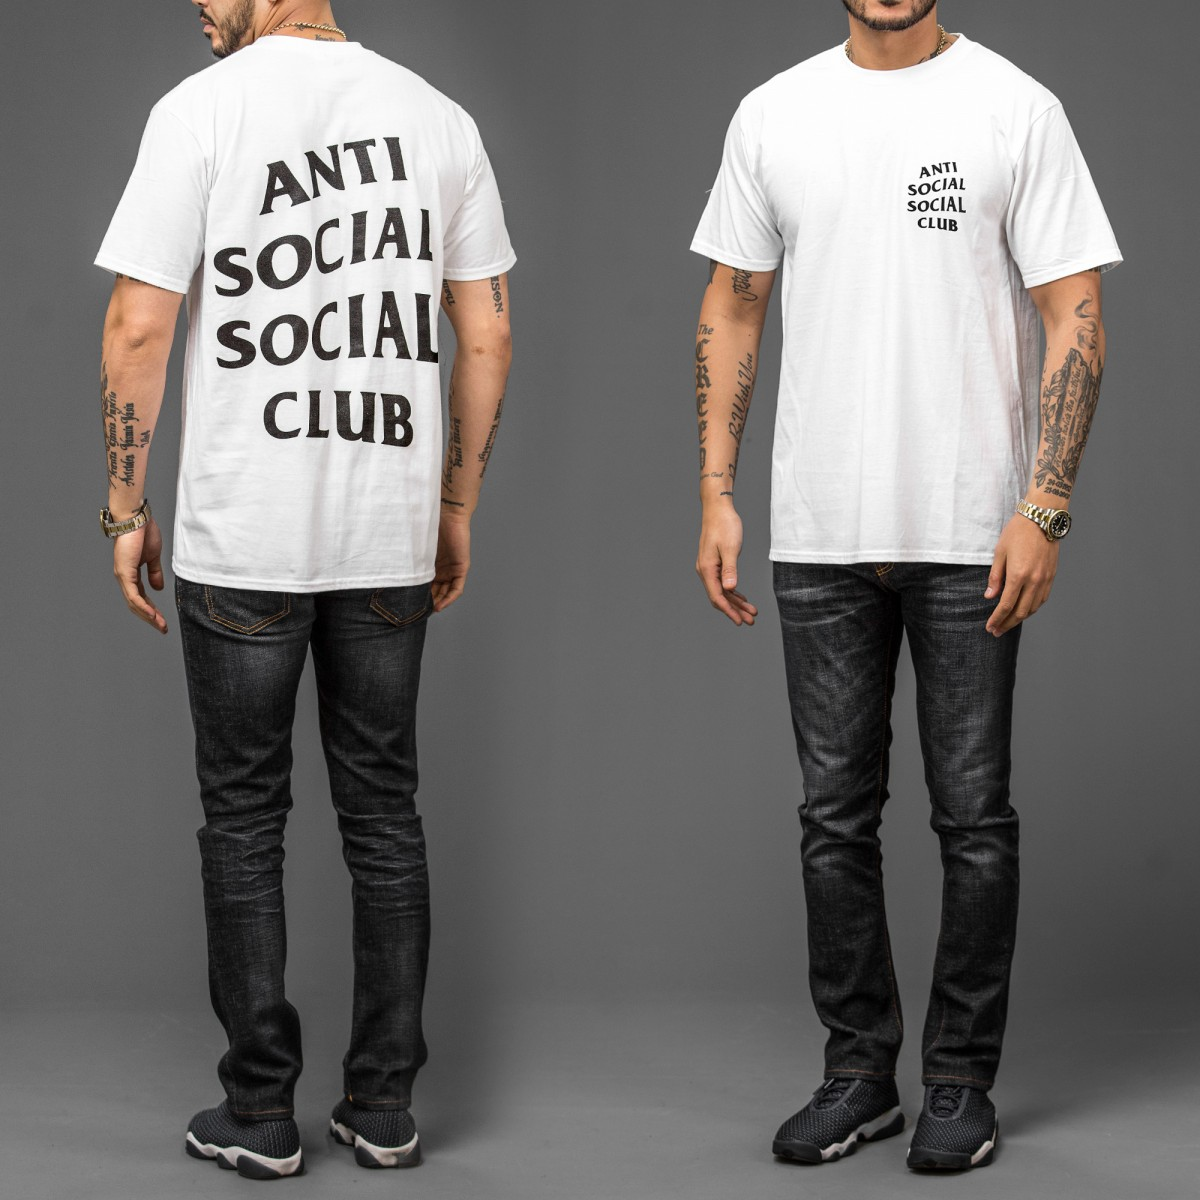 Ellipsesinc Shop Line Kaos Pria Lengan Pendek Basic White Shirt Tumblr Tee T Anti Social Club Warna Putih